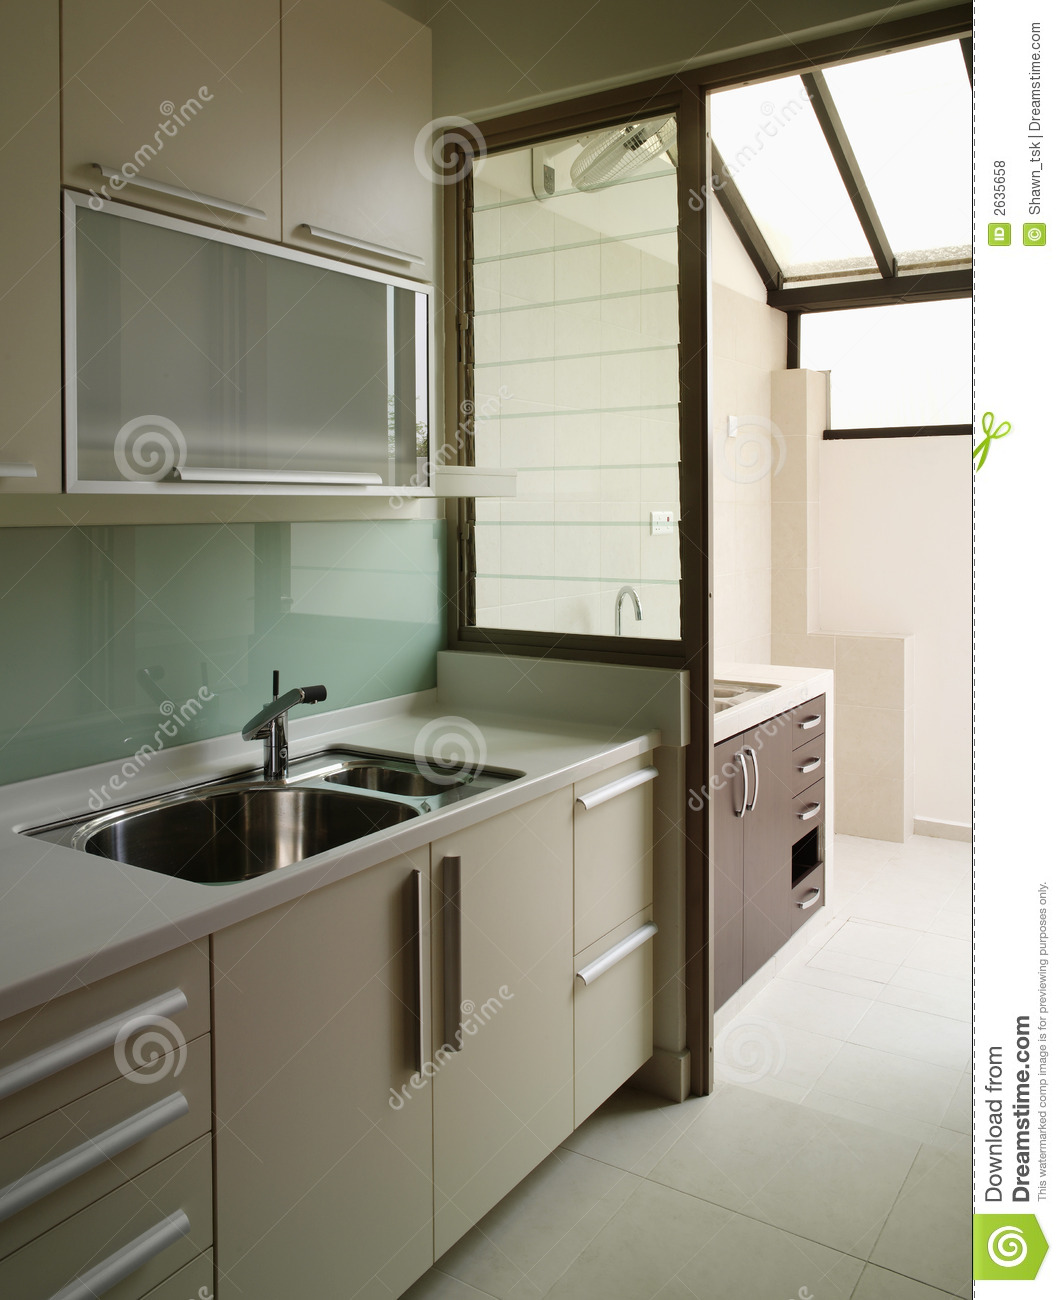 Interior design kitchen royalty free stock photos image 2635658 - Kitchen interior design photos ...